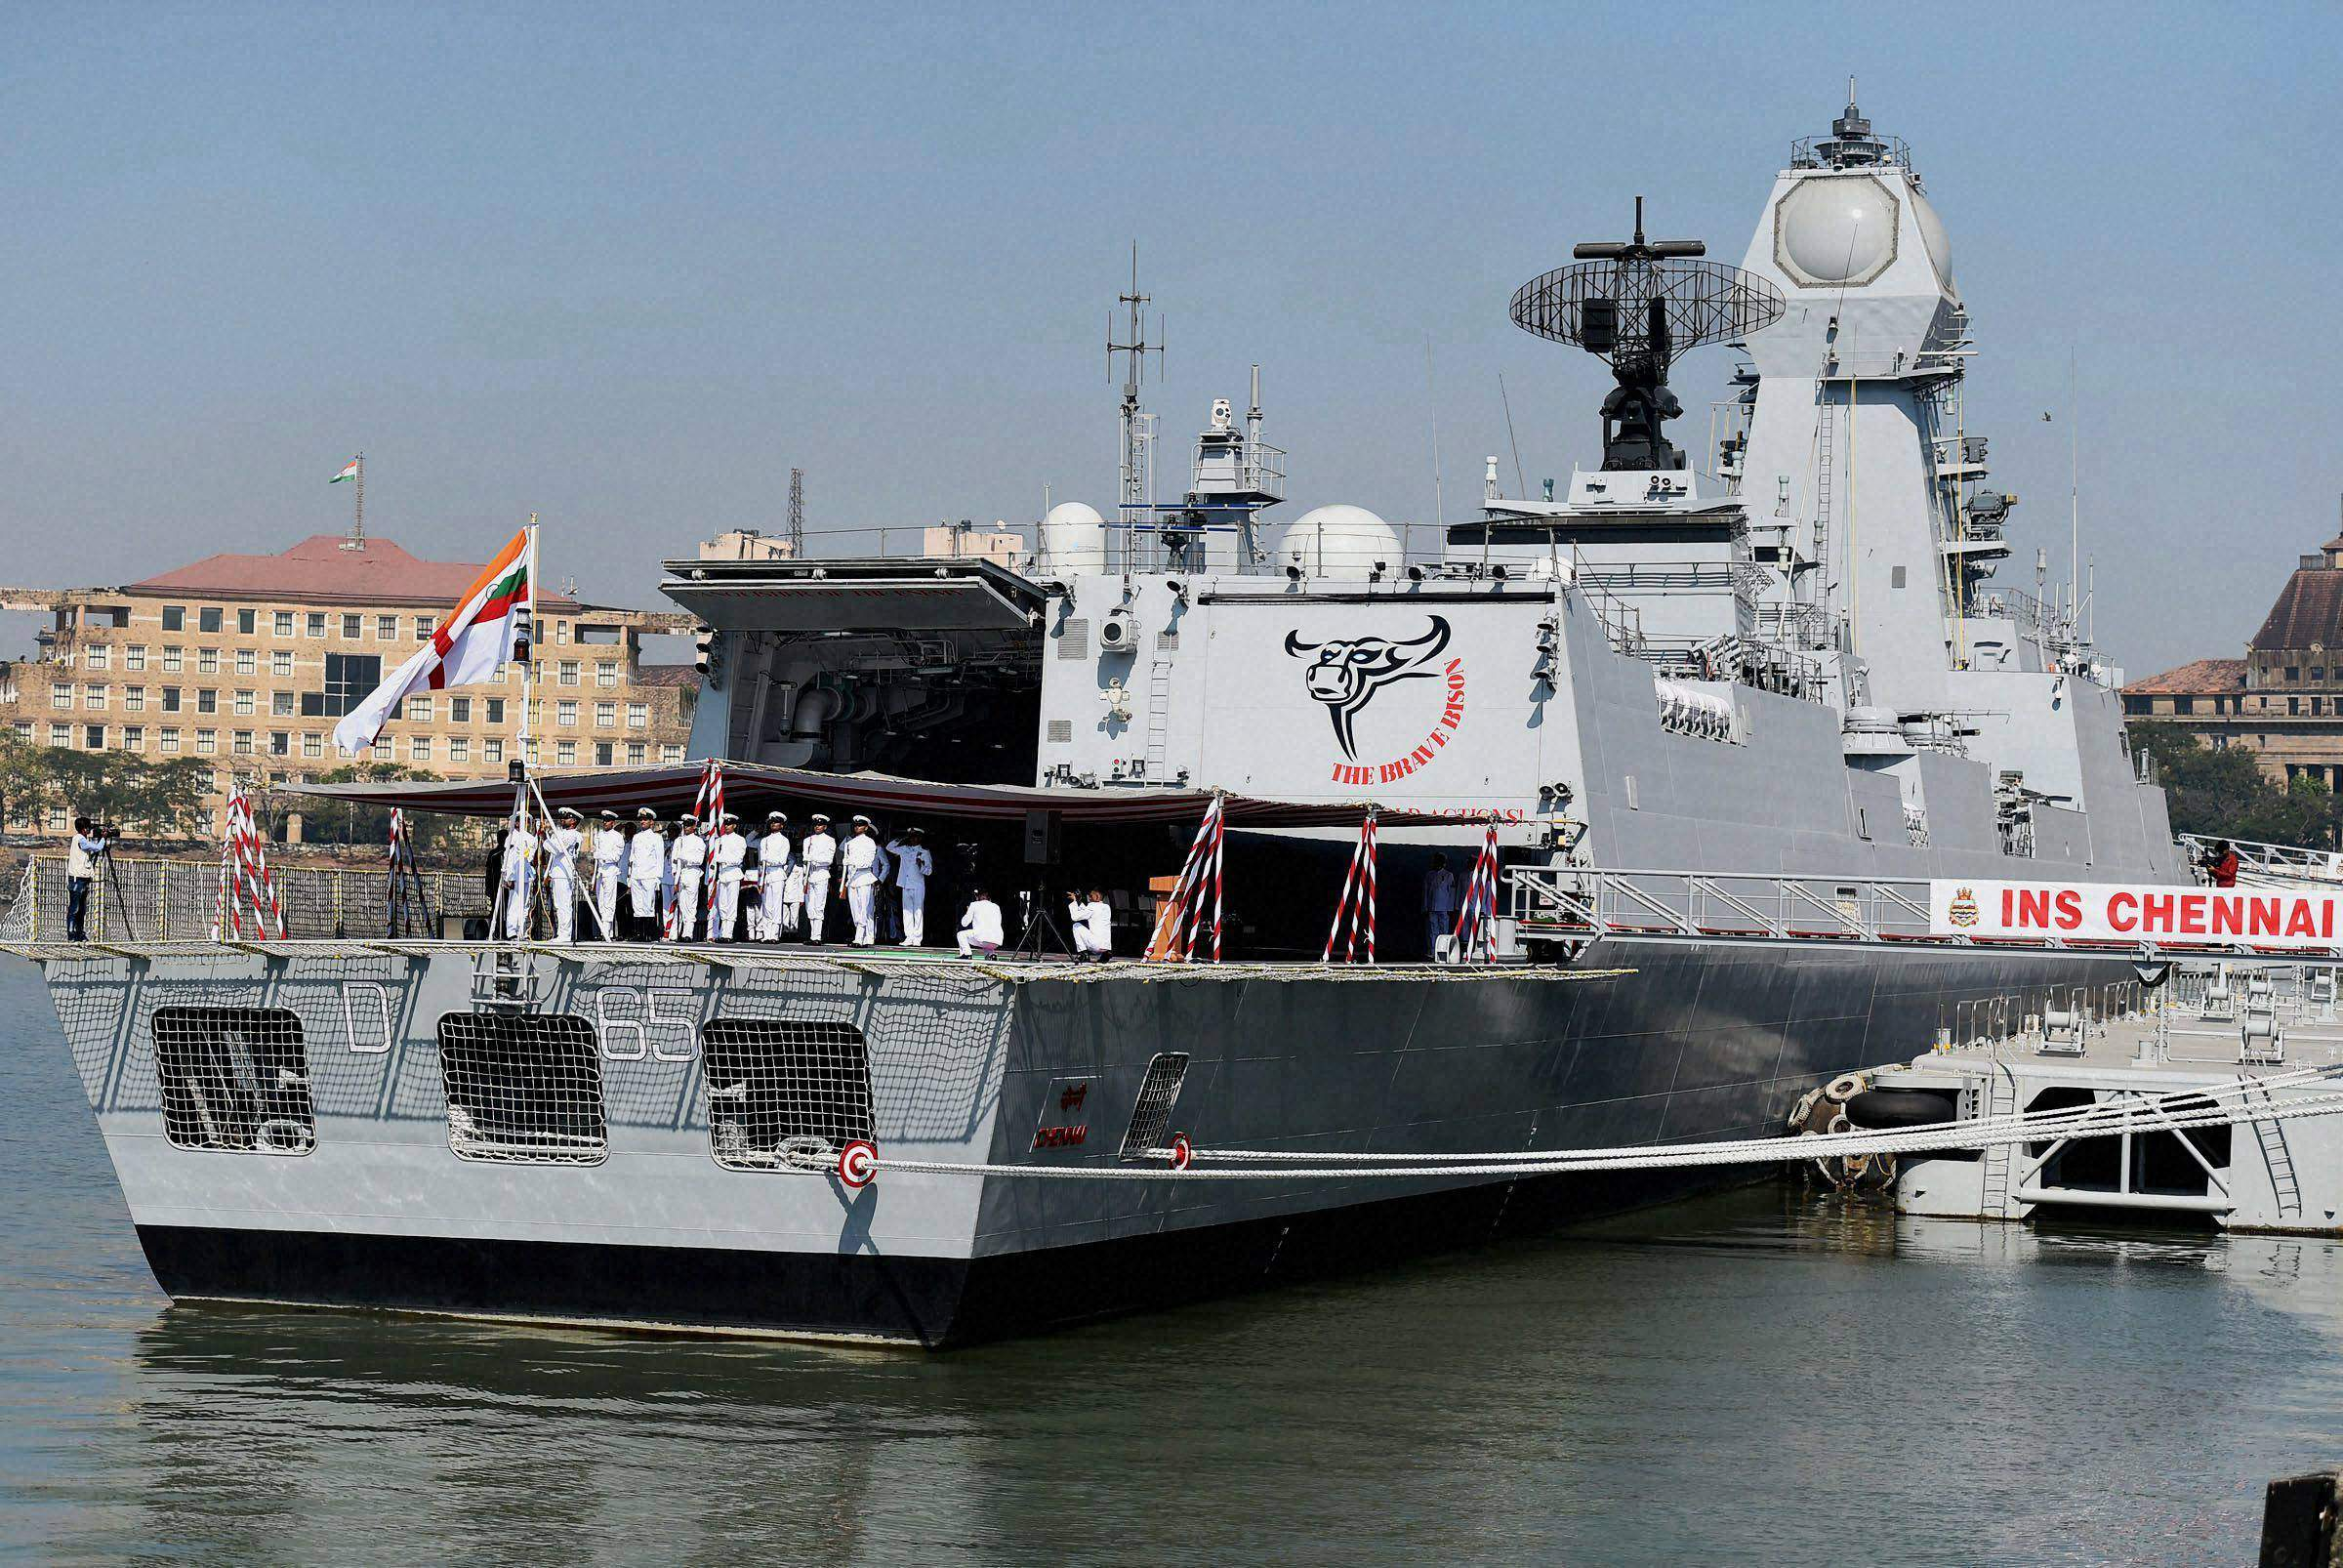 Thousands of students visit INS Chennai